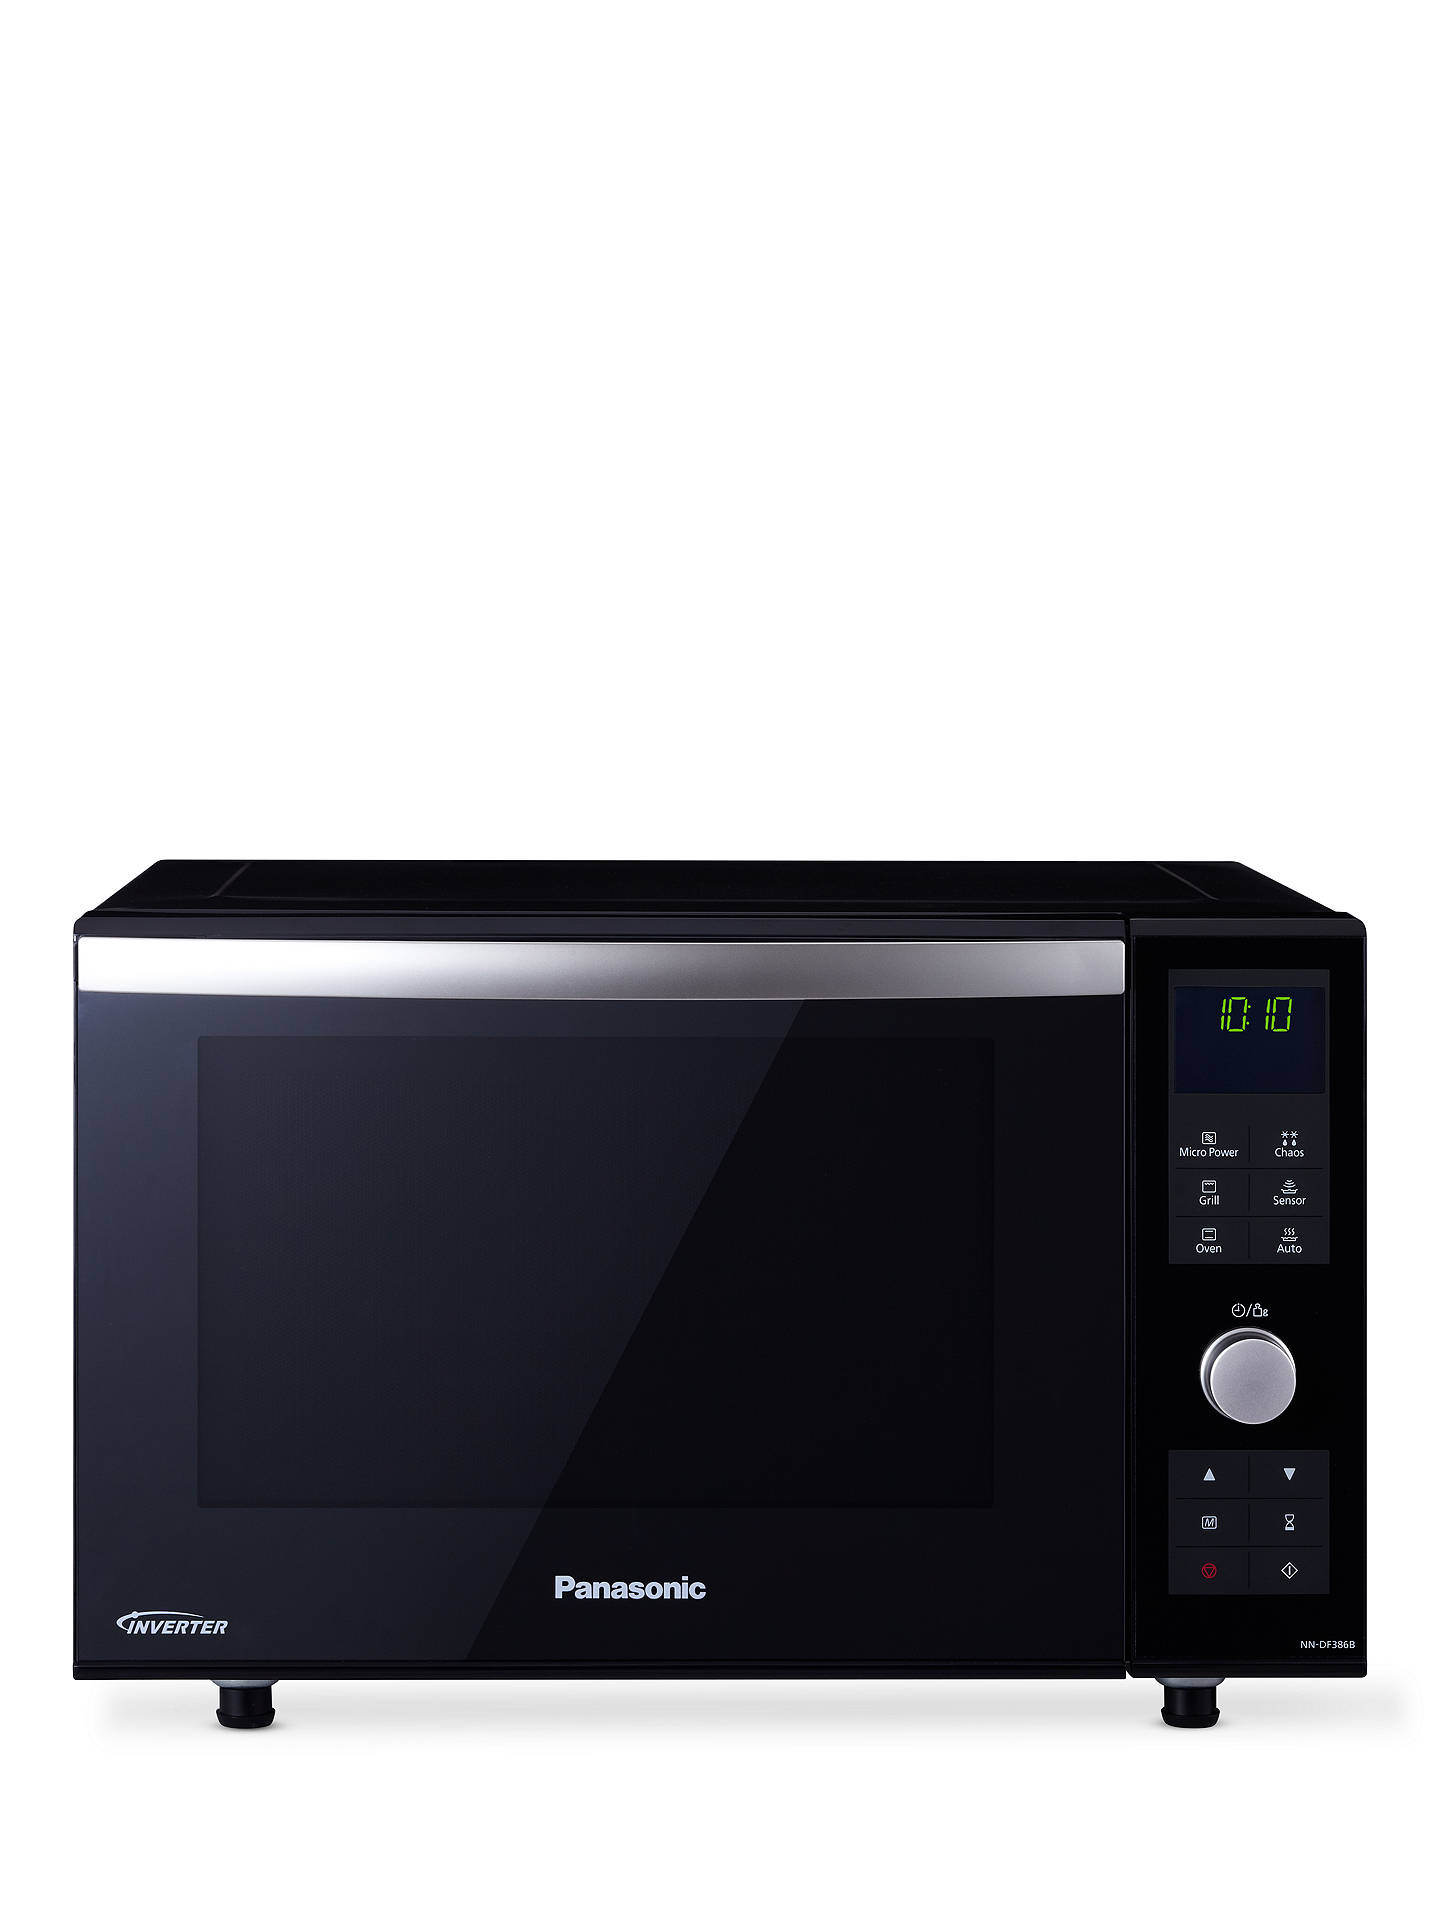 BuyPanasonic NN-DF386BBPQ Freestanding 3-in-1 Combination Microwave Oven  with Grill, ...